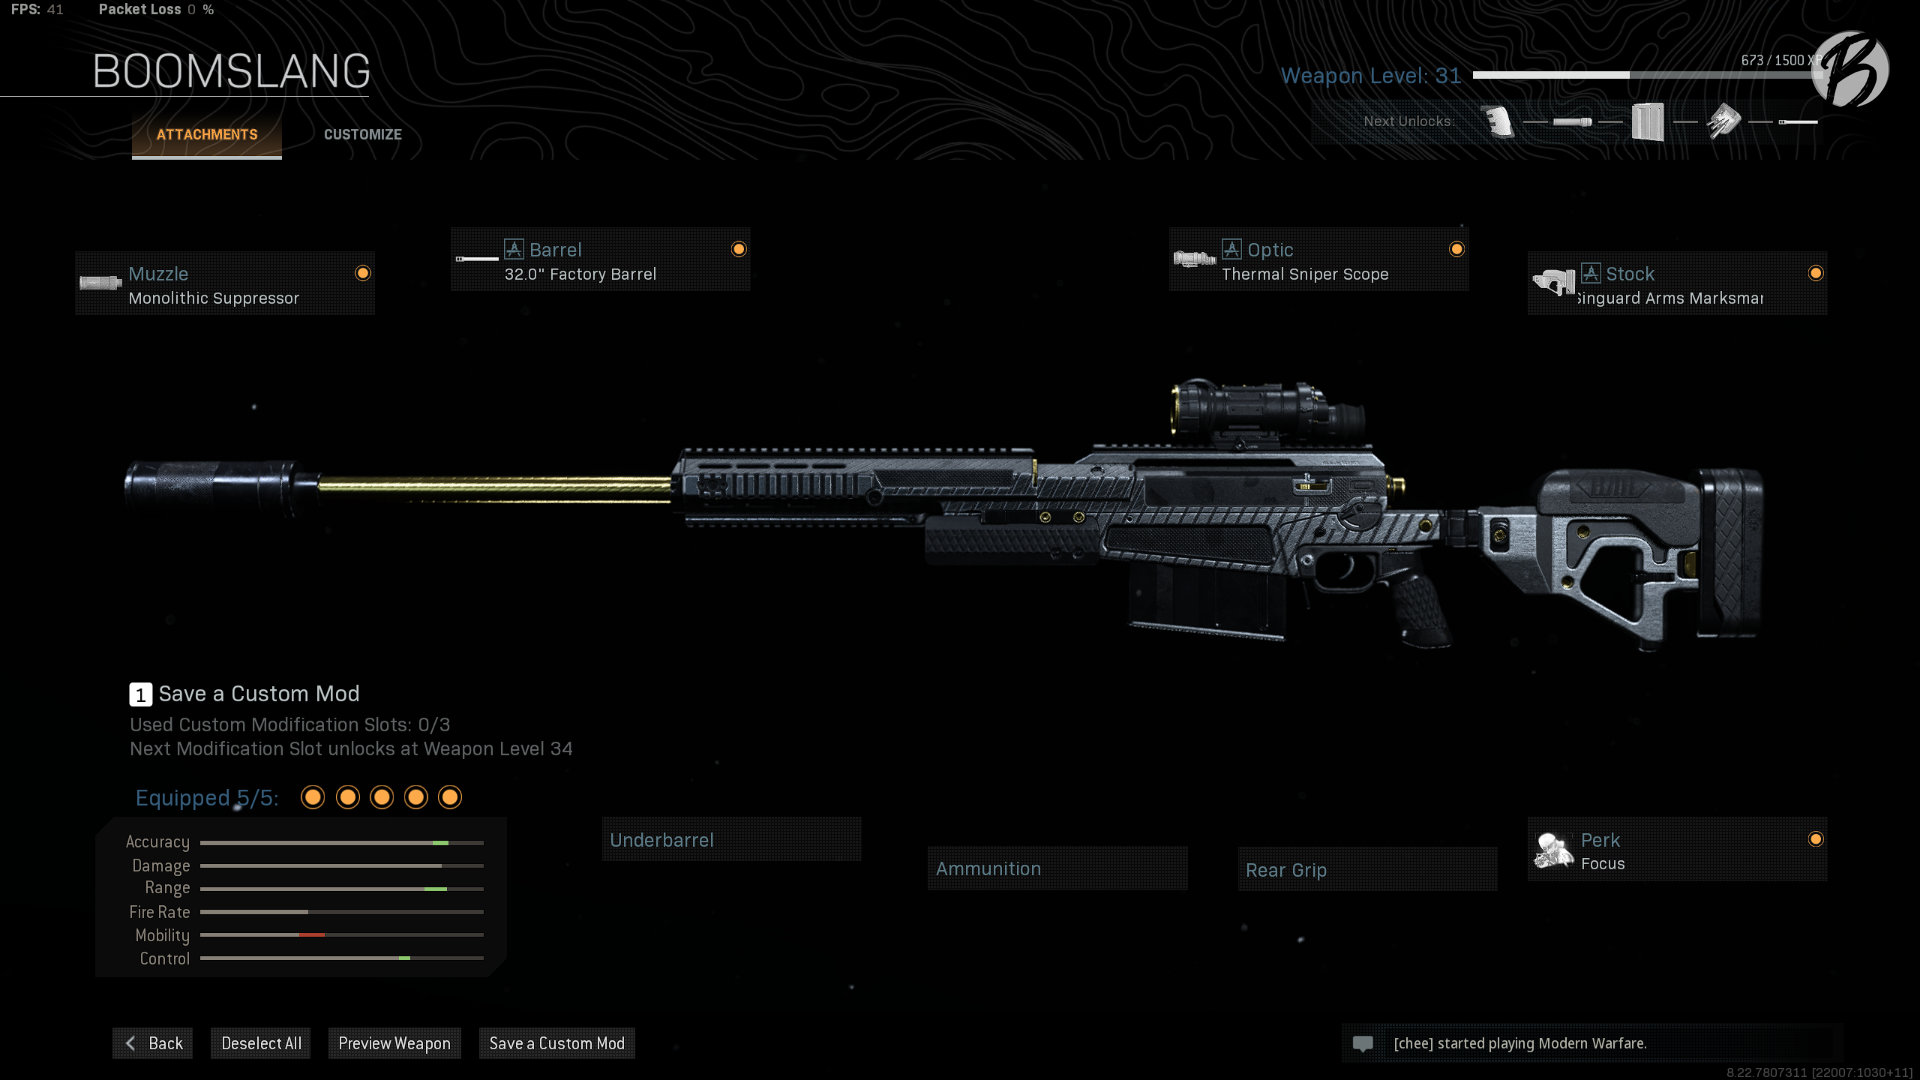 "AX-50: Monolithic Supressor, 32.0"" Factory Barrel, Thermal Sniper Scope, Singuard Arms Marksman, Focus"